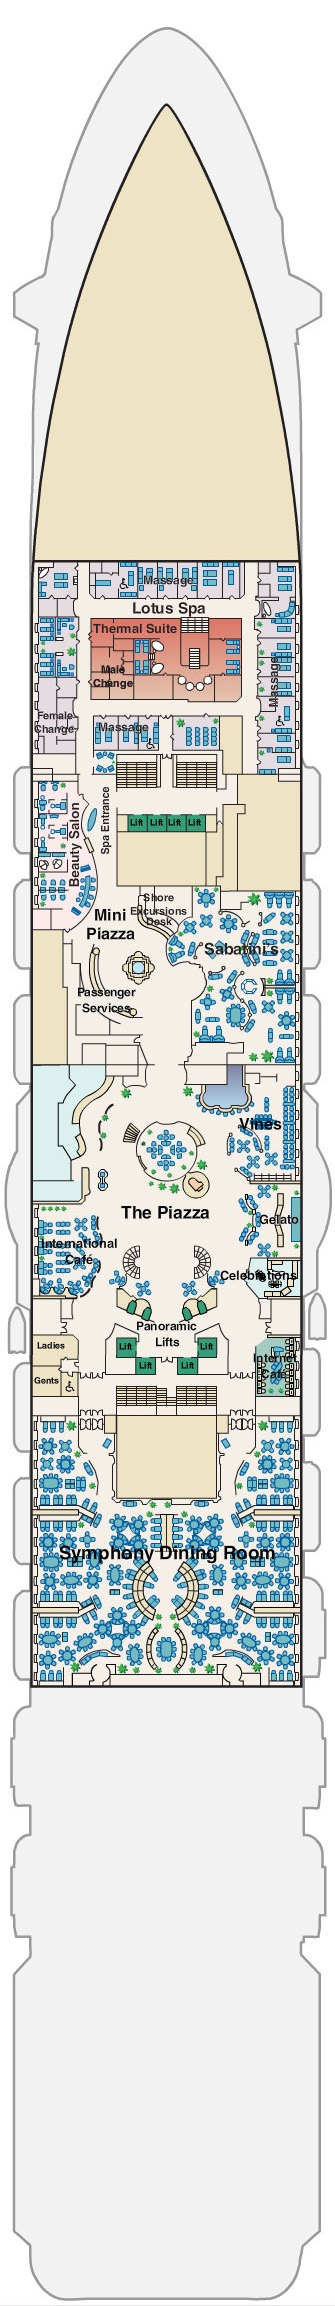 Regal Princess Deck 5 - Plaza layout